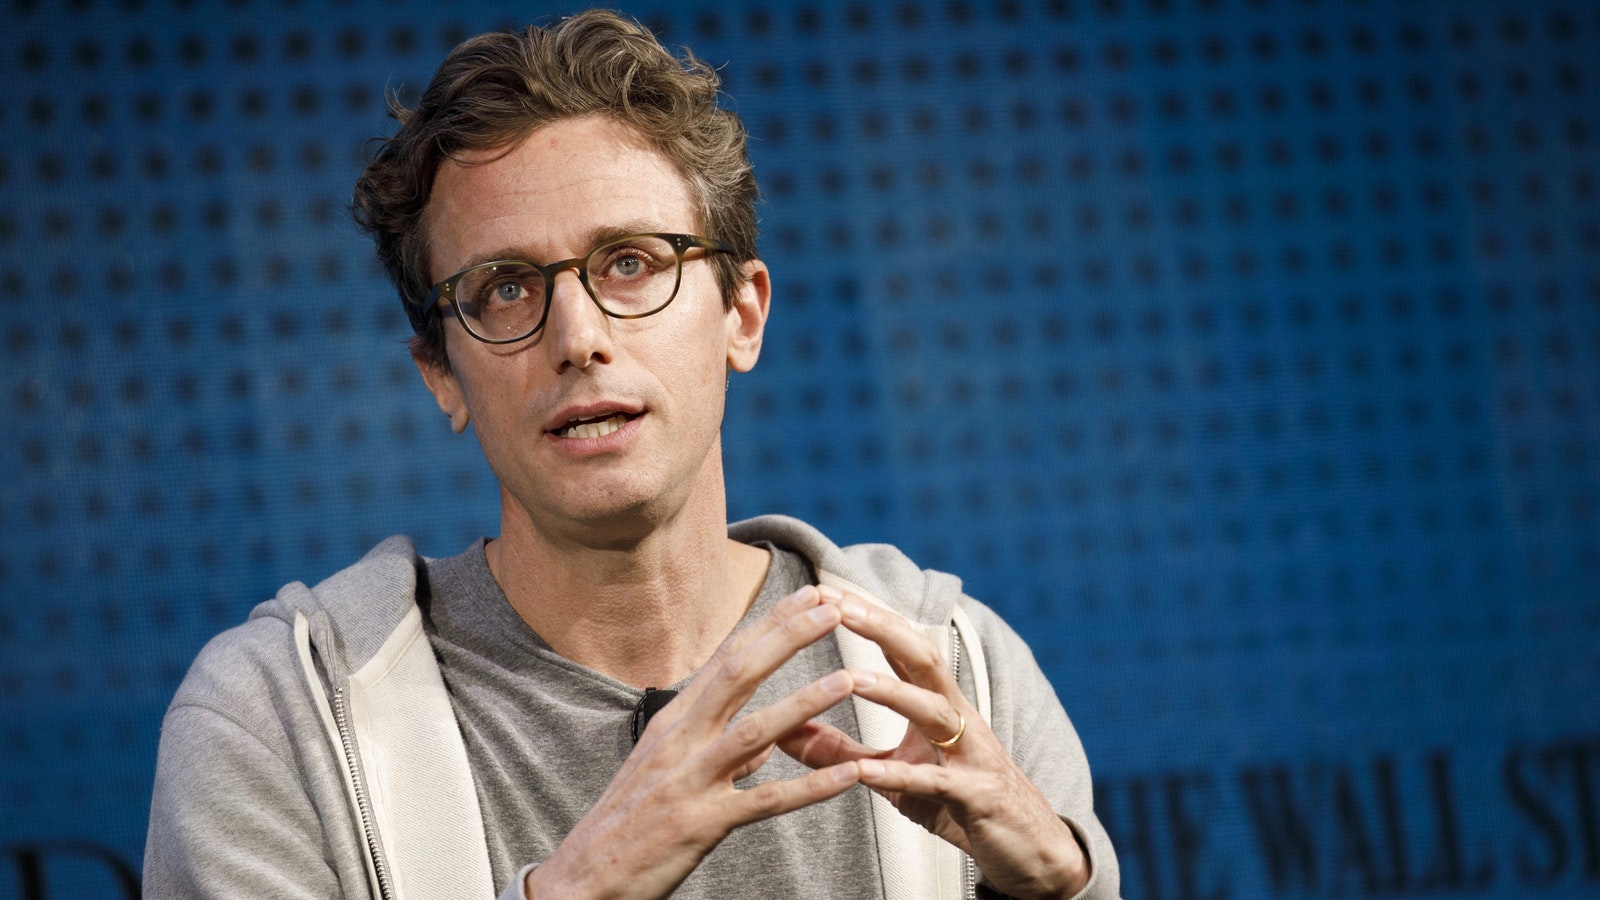 BuzzFeed CEO Jonah Peretti. Photo by Bloomberg